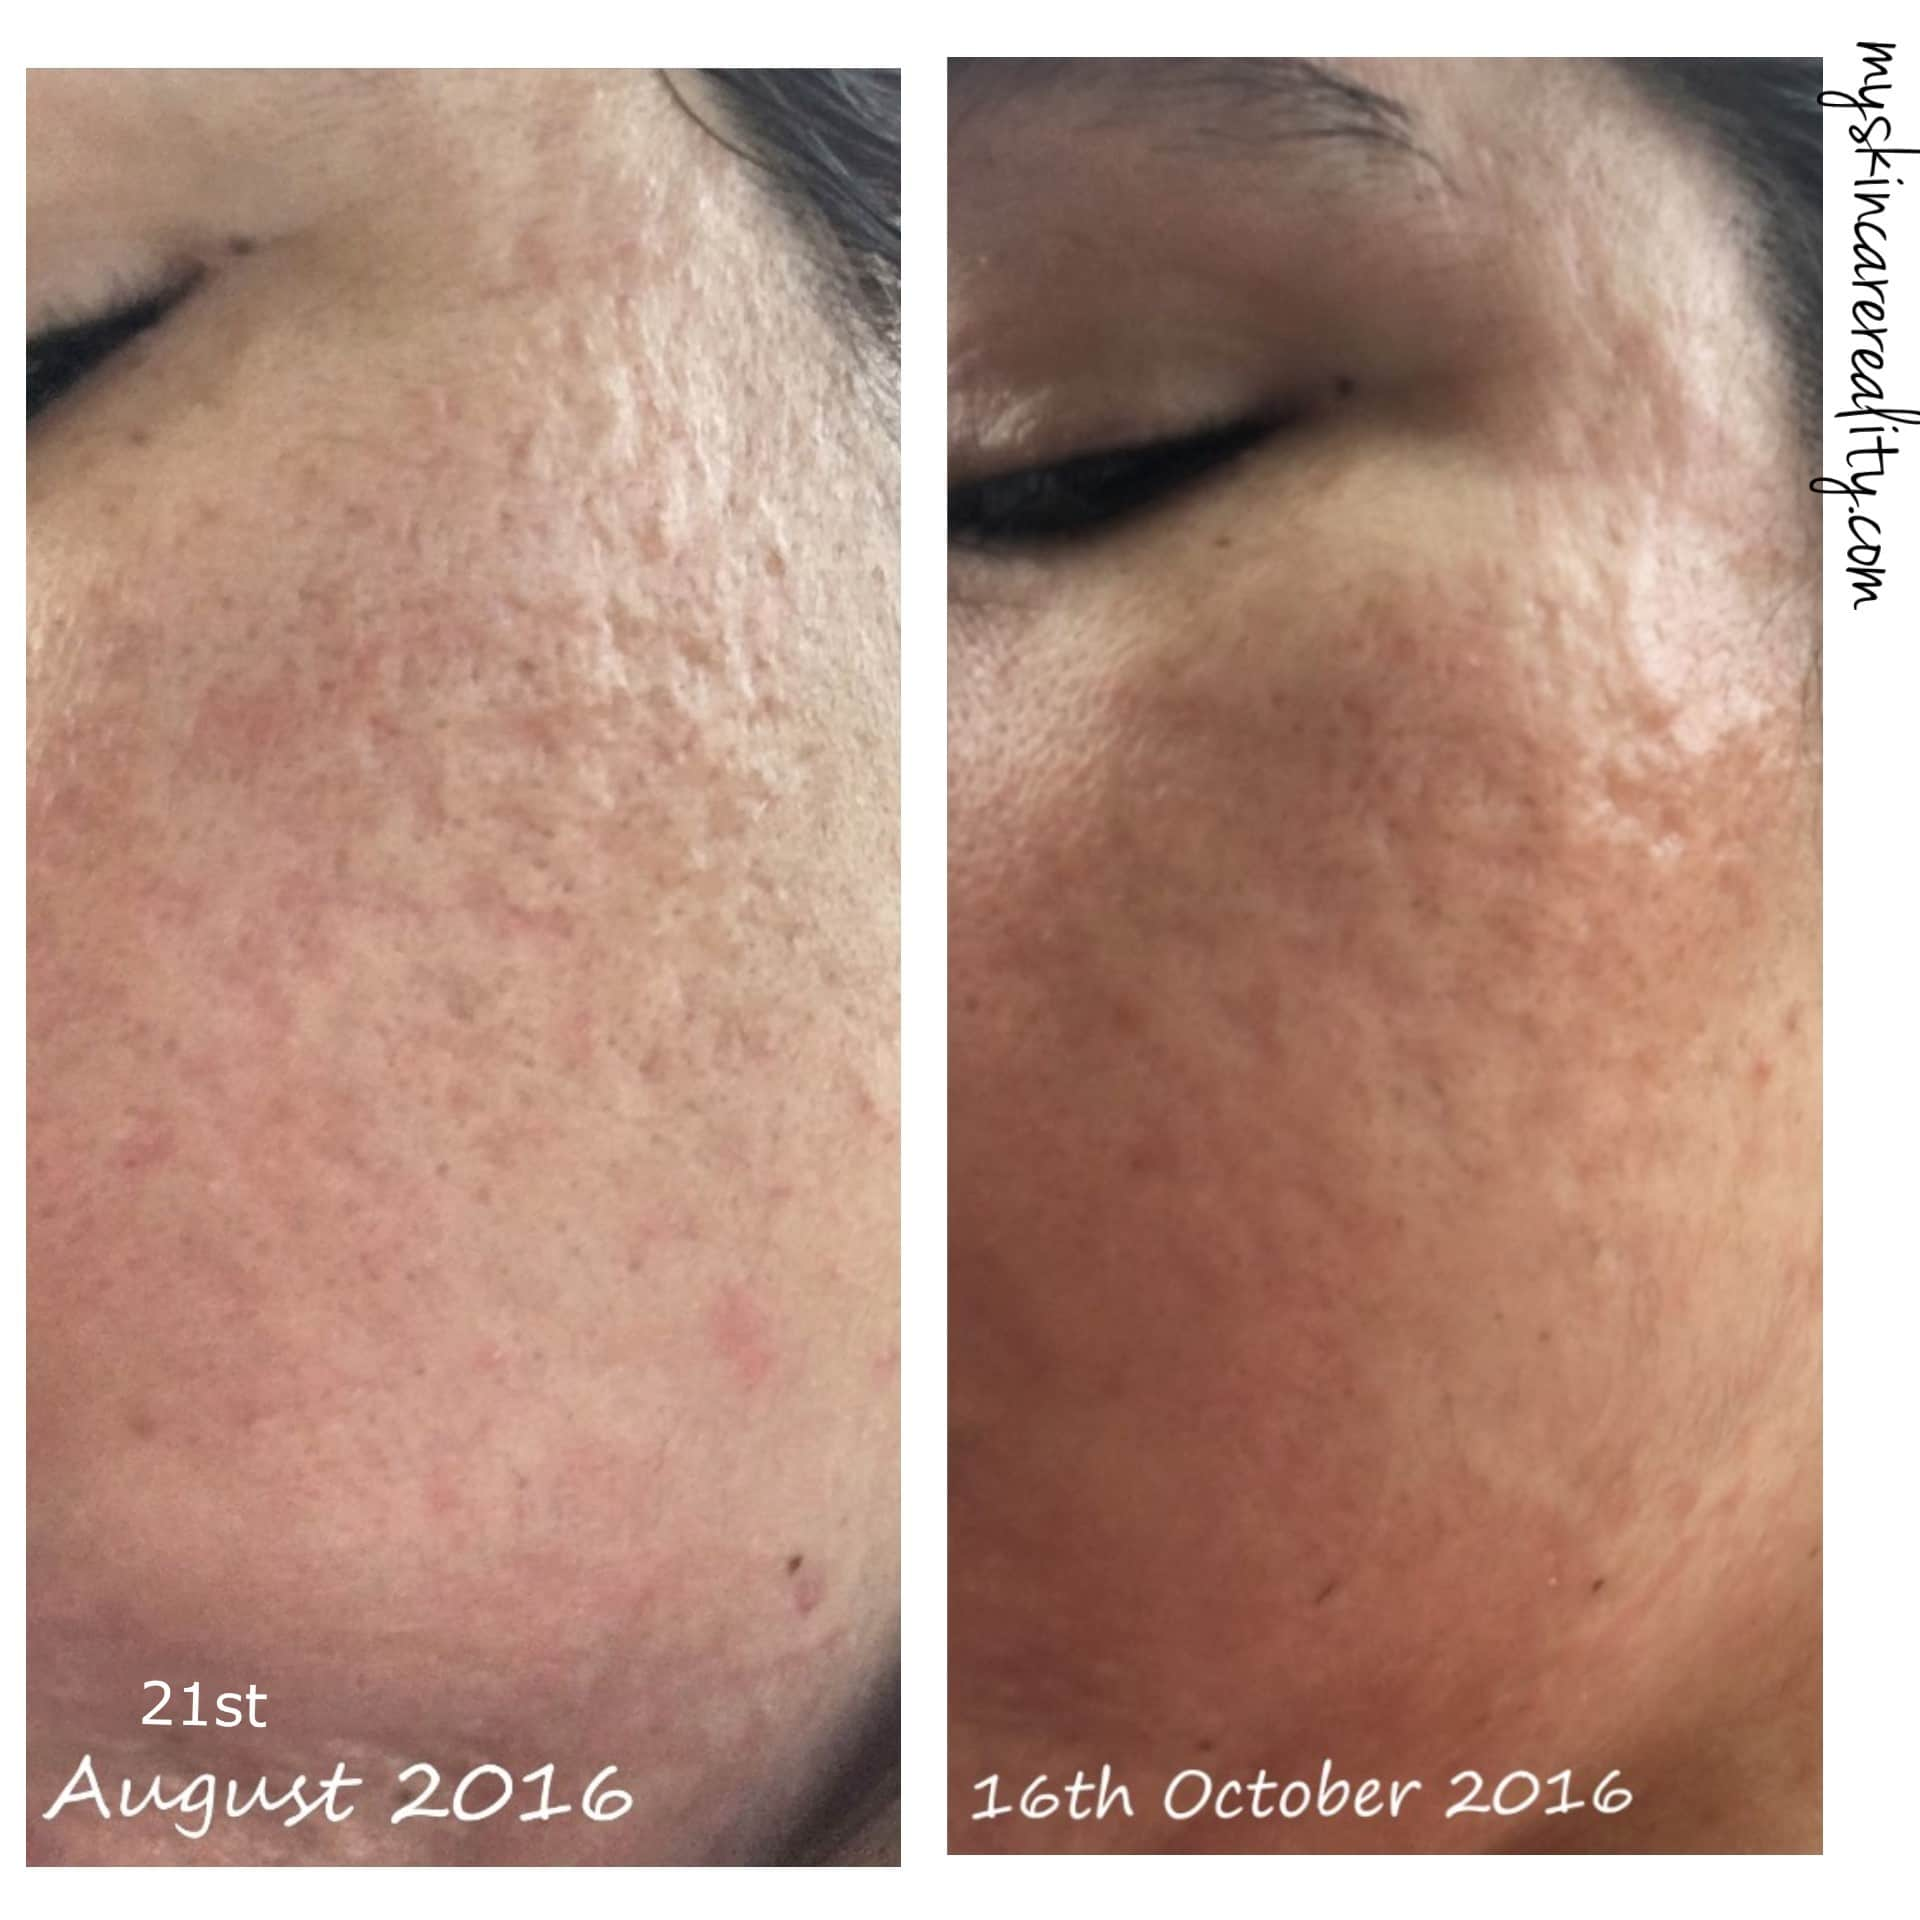 Indented Acne Scars |Skin Progress Pictures Update 1